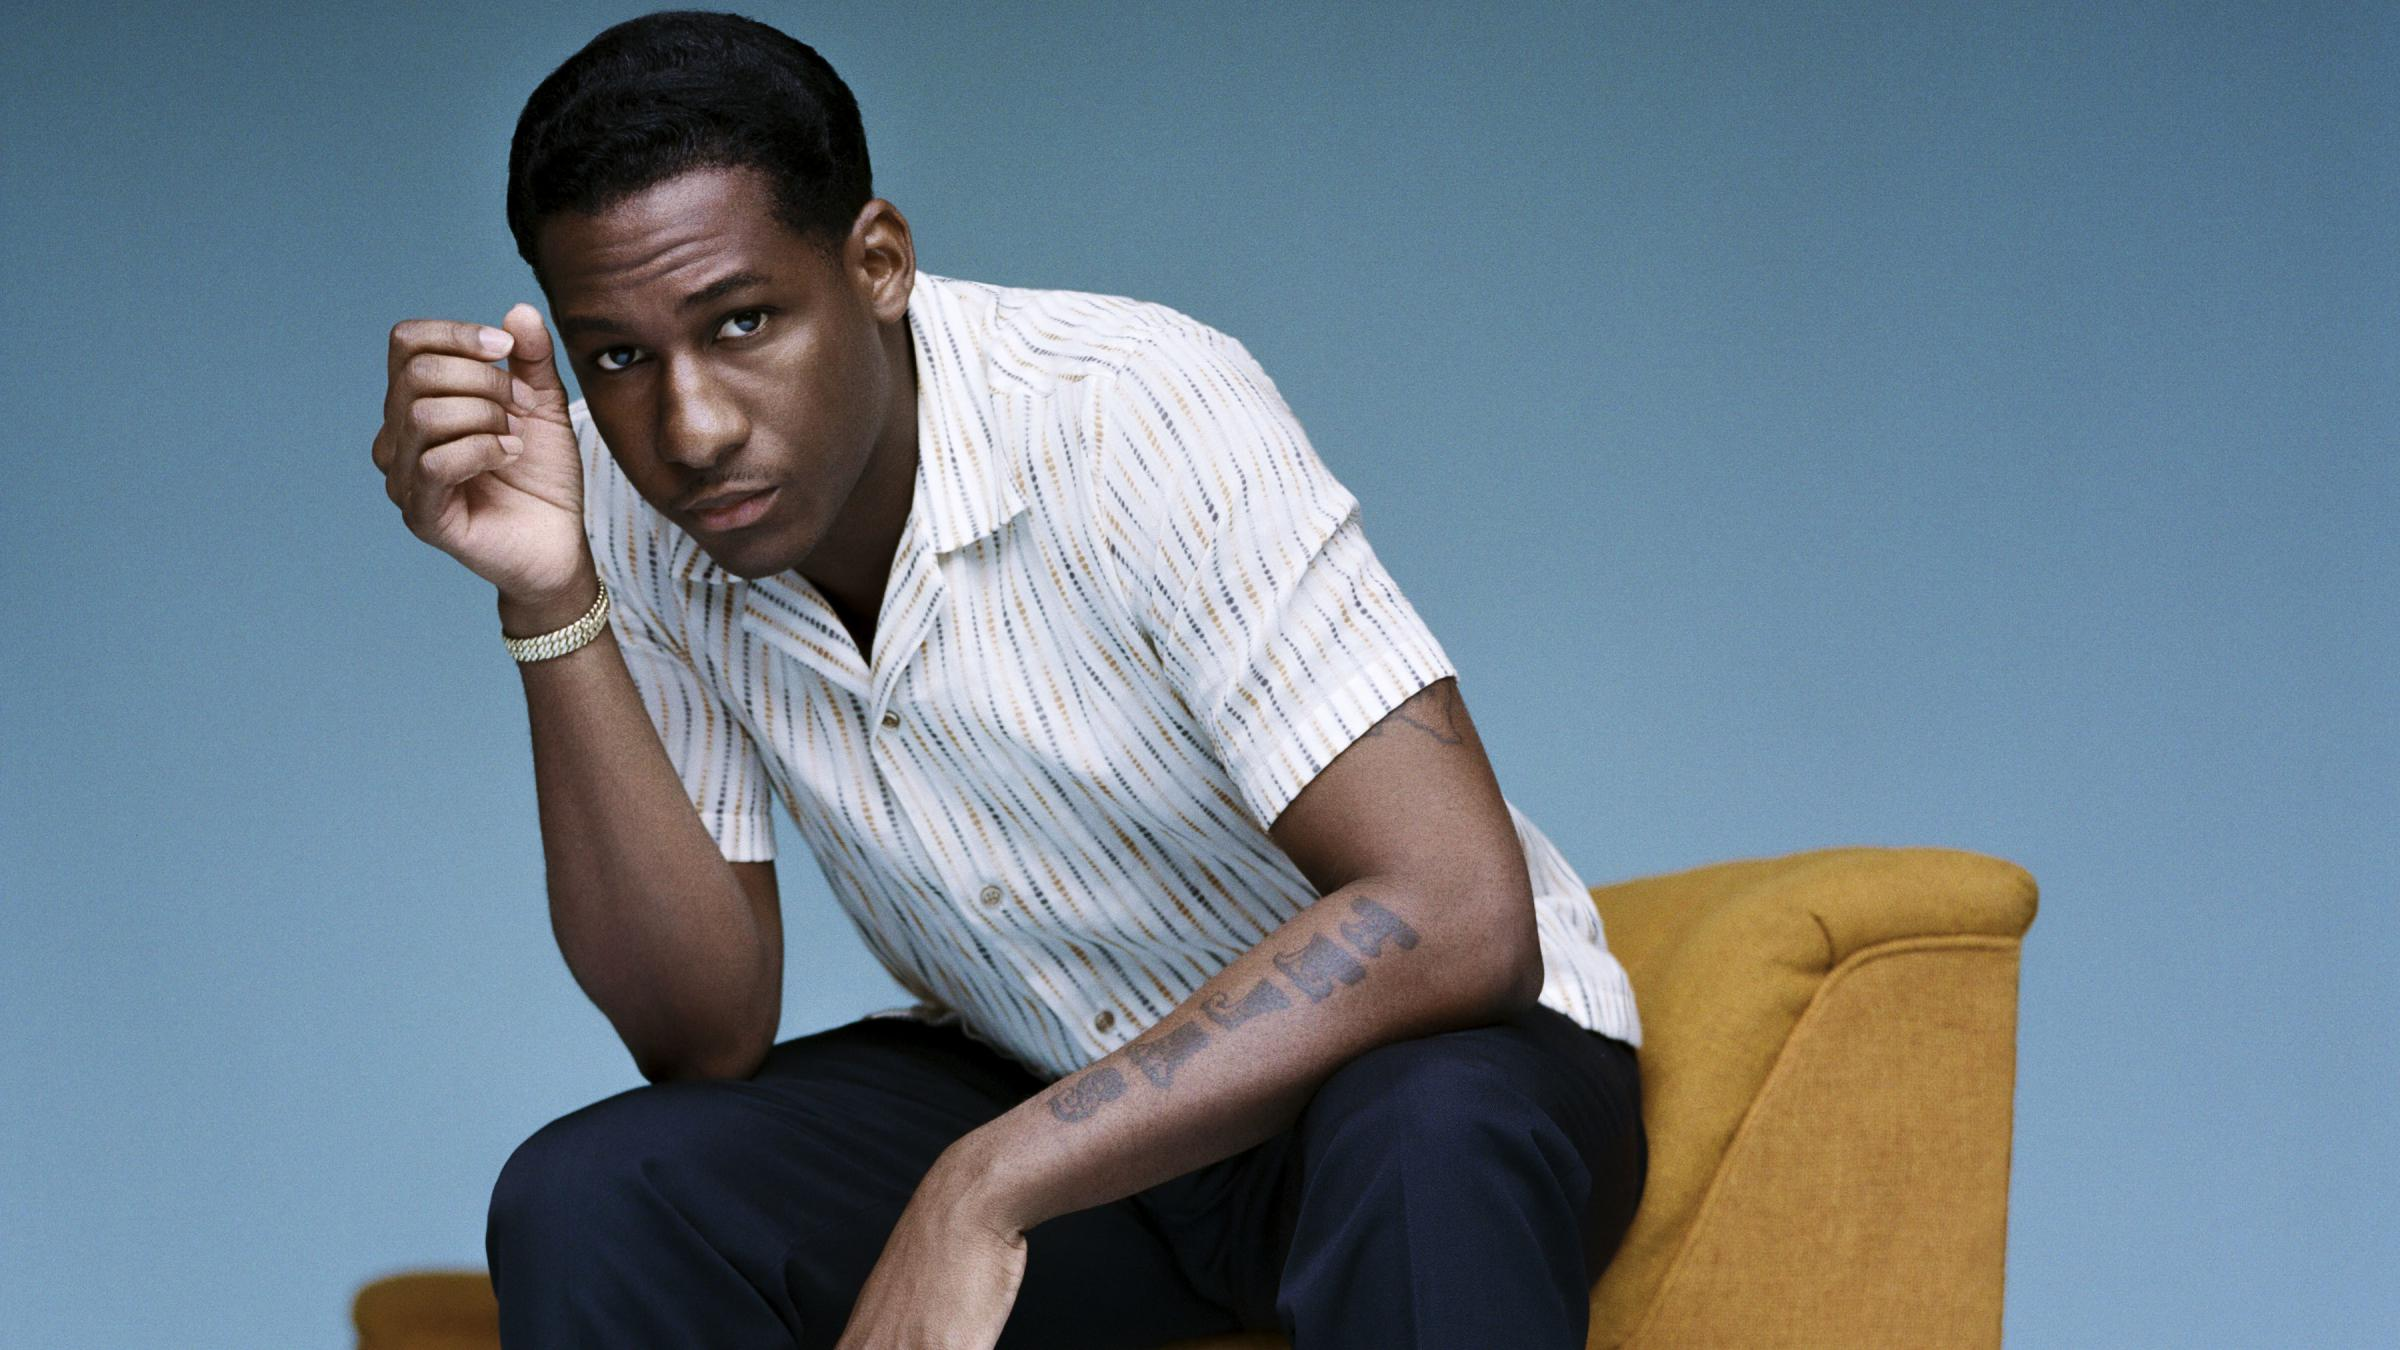 Leon Bridges Remixes His Retro Style To 'Move The Sound Forward